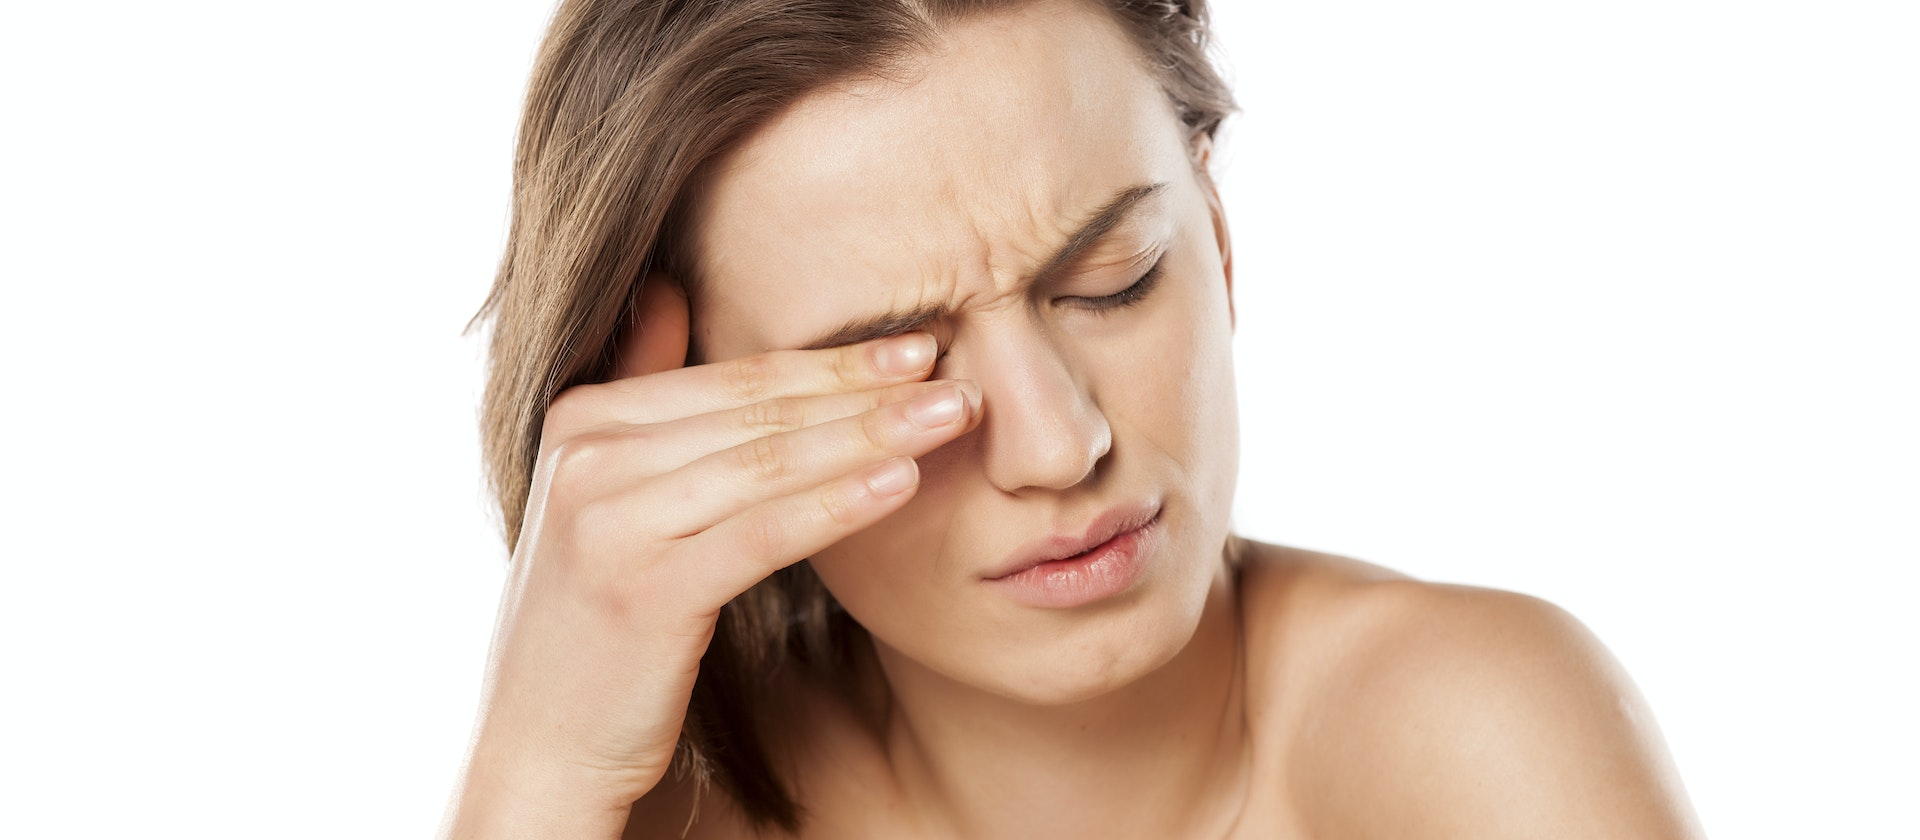 Pain Around The Eye Symptoms Causes Common Questions Buoy